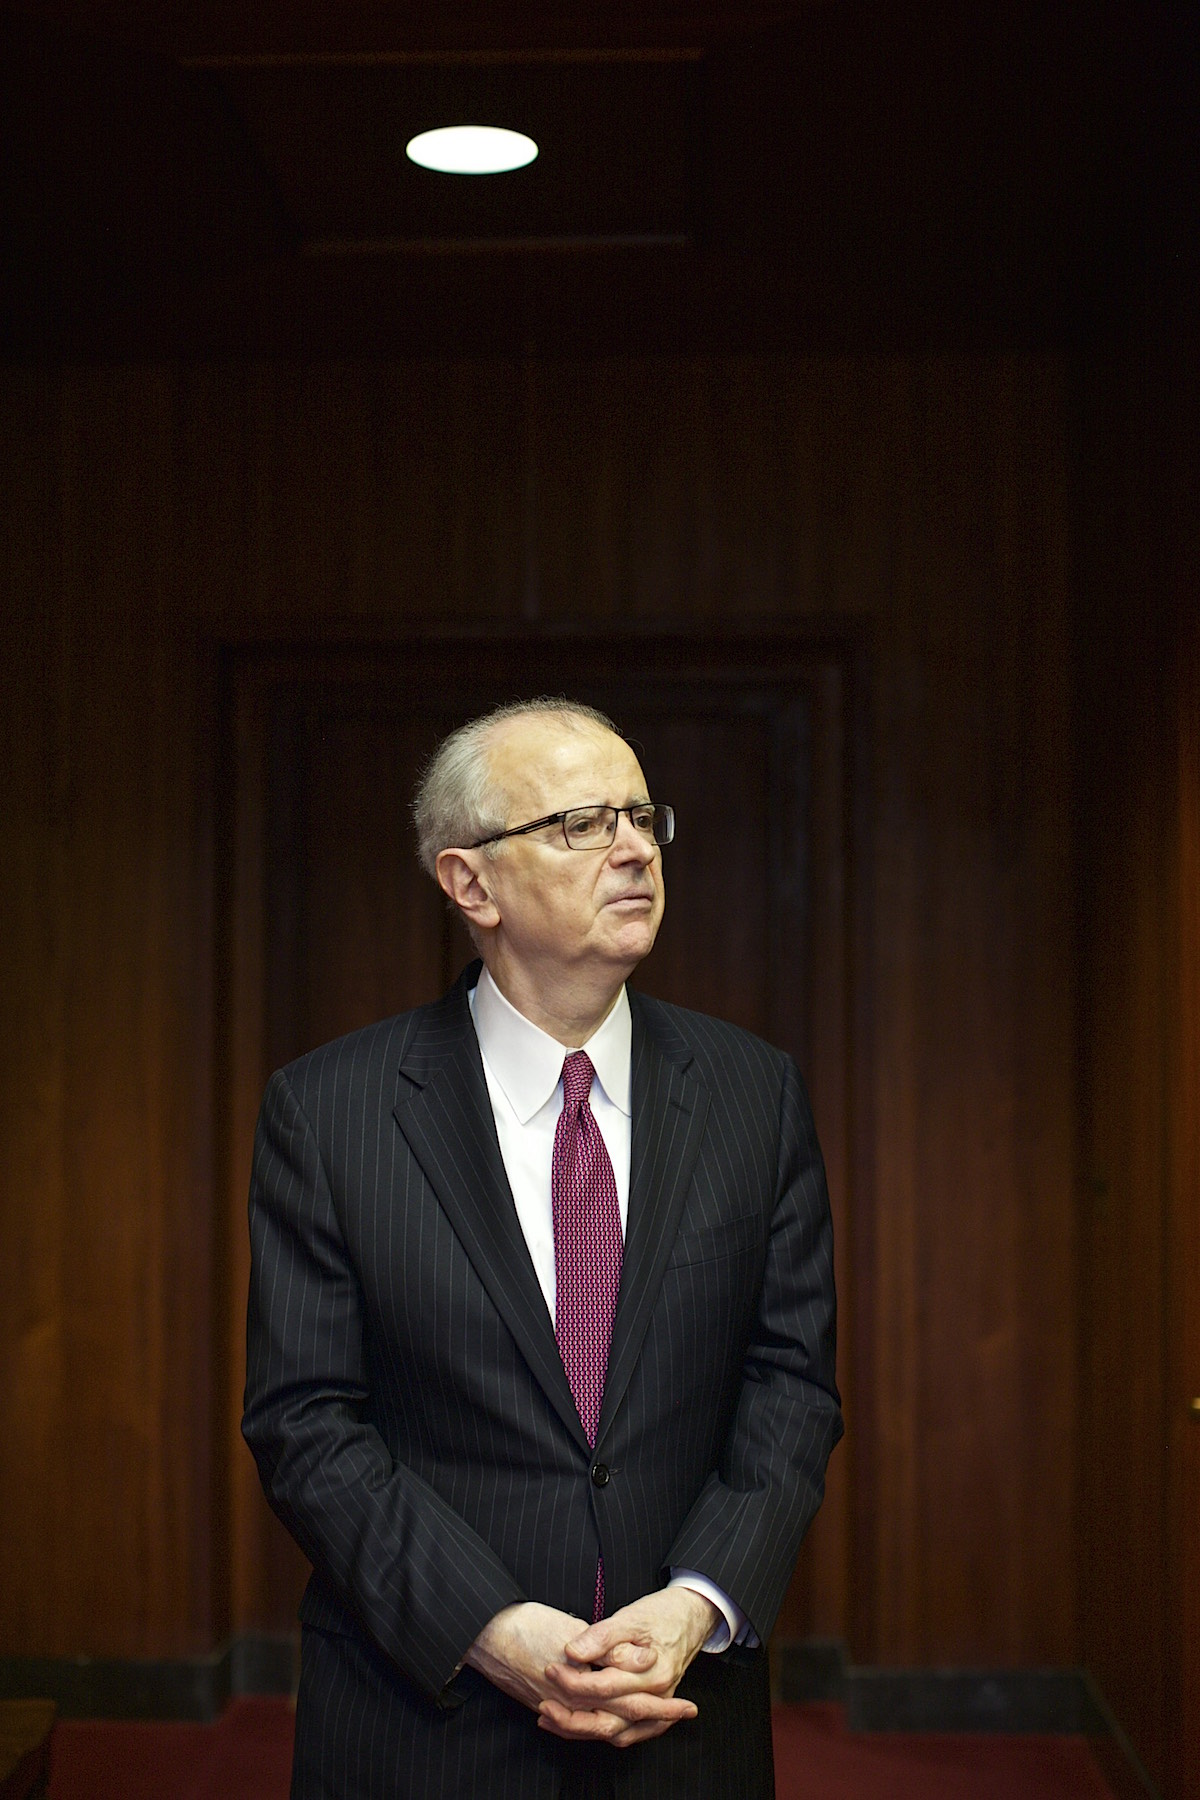 Judge Jonathan Lippman for The Wall Street Journal